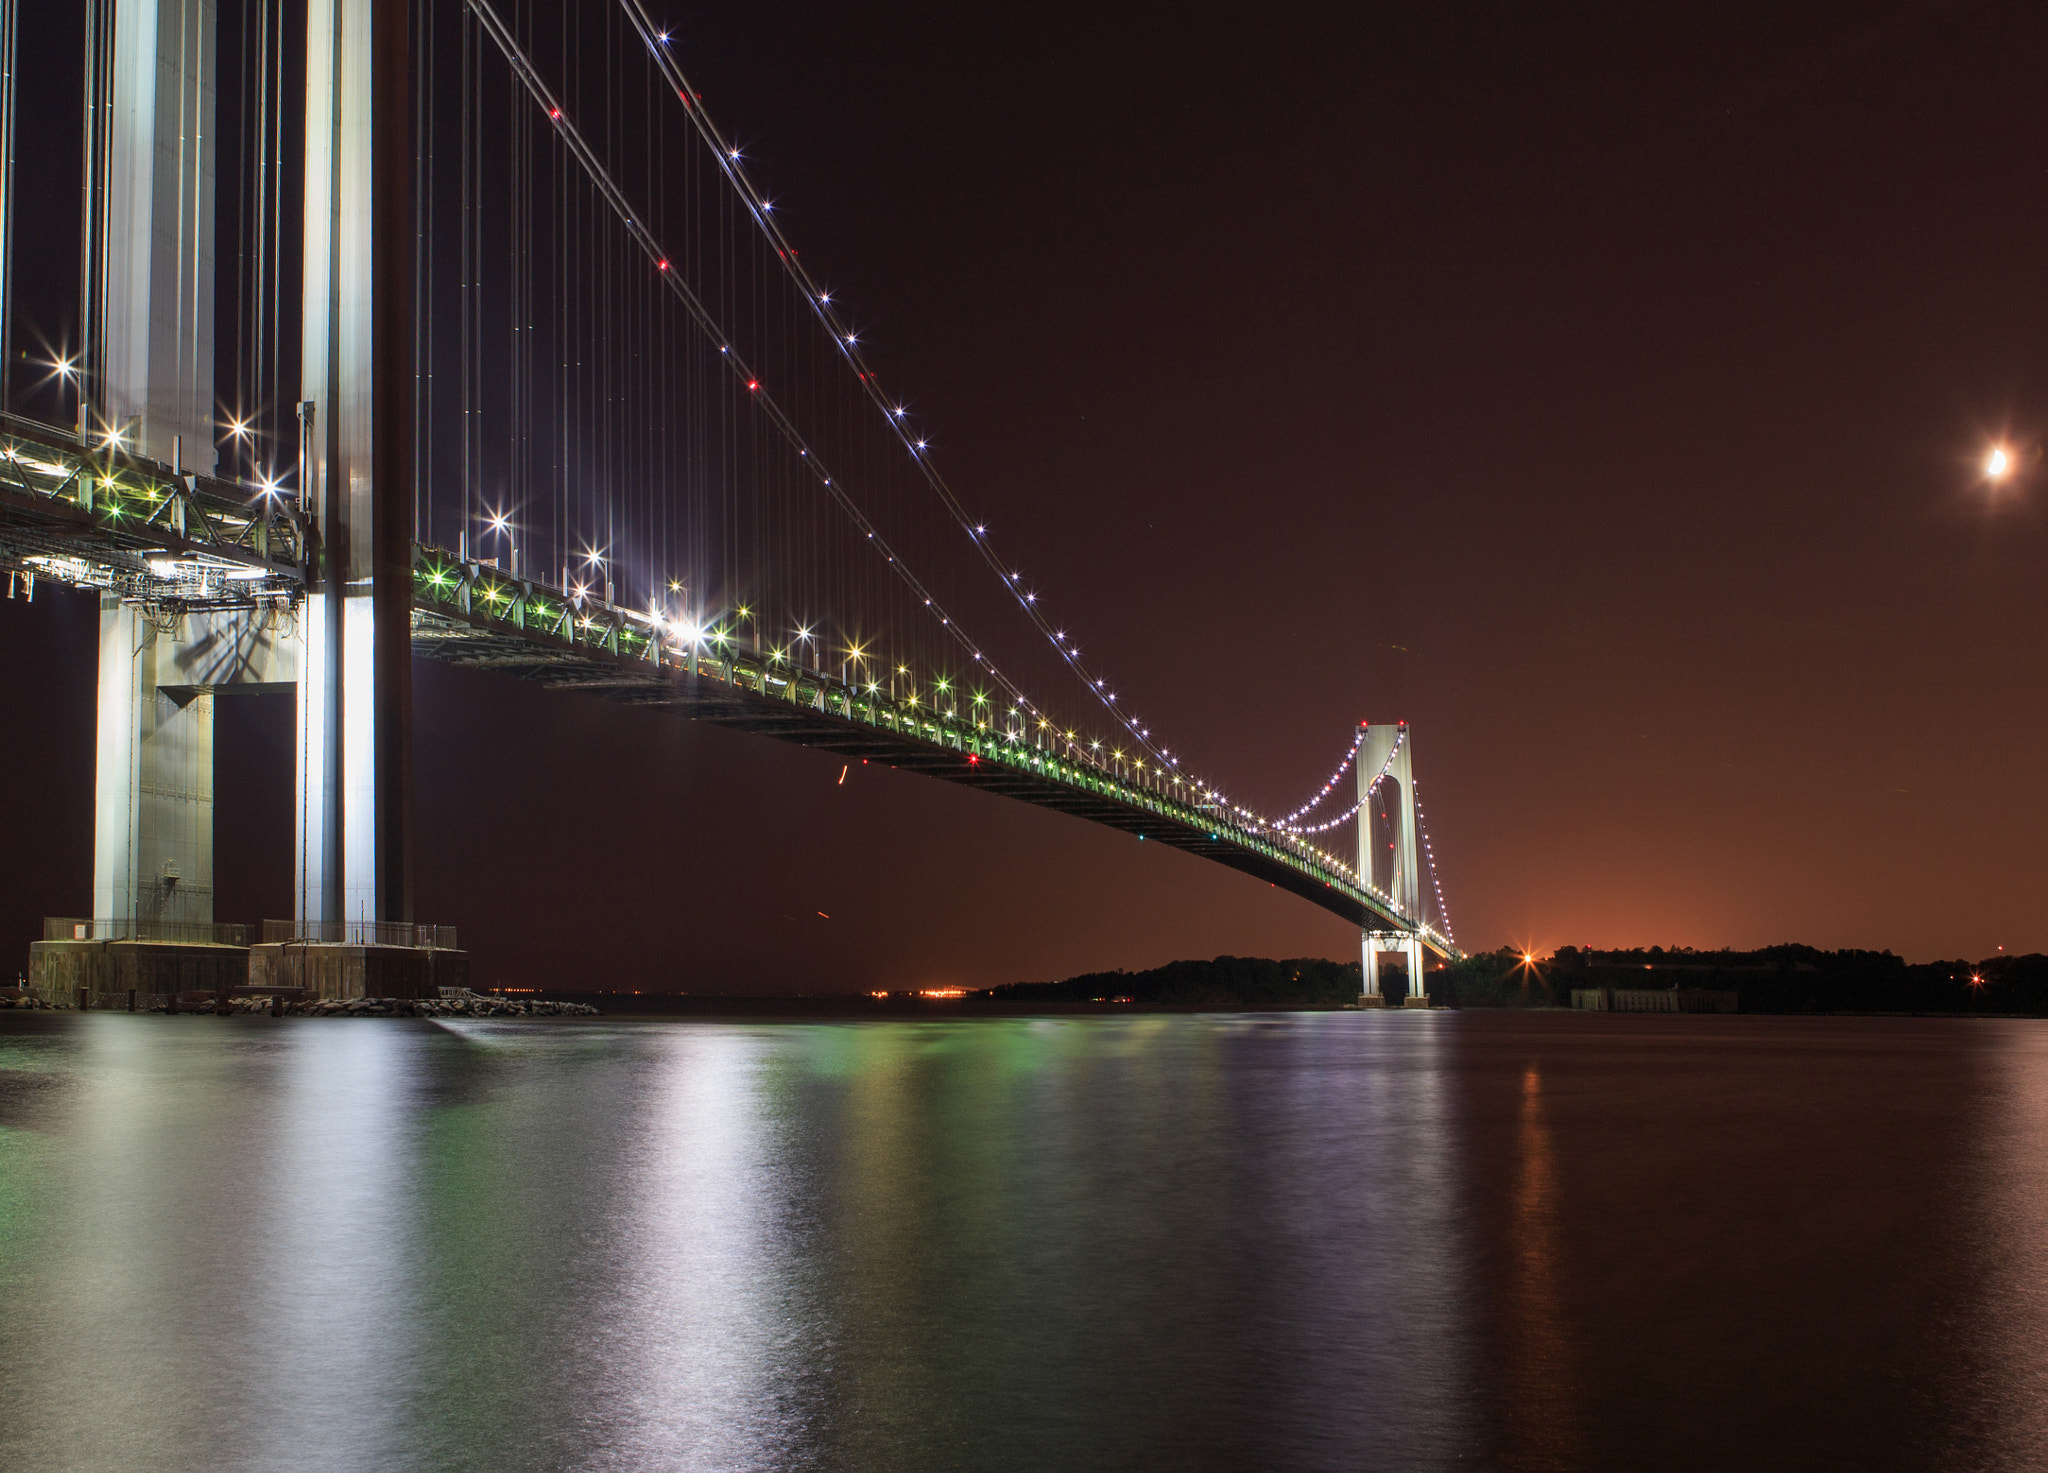 Photograph Verrazano bridge  by Oleg Kotelskiy on 500px